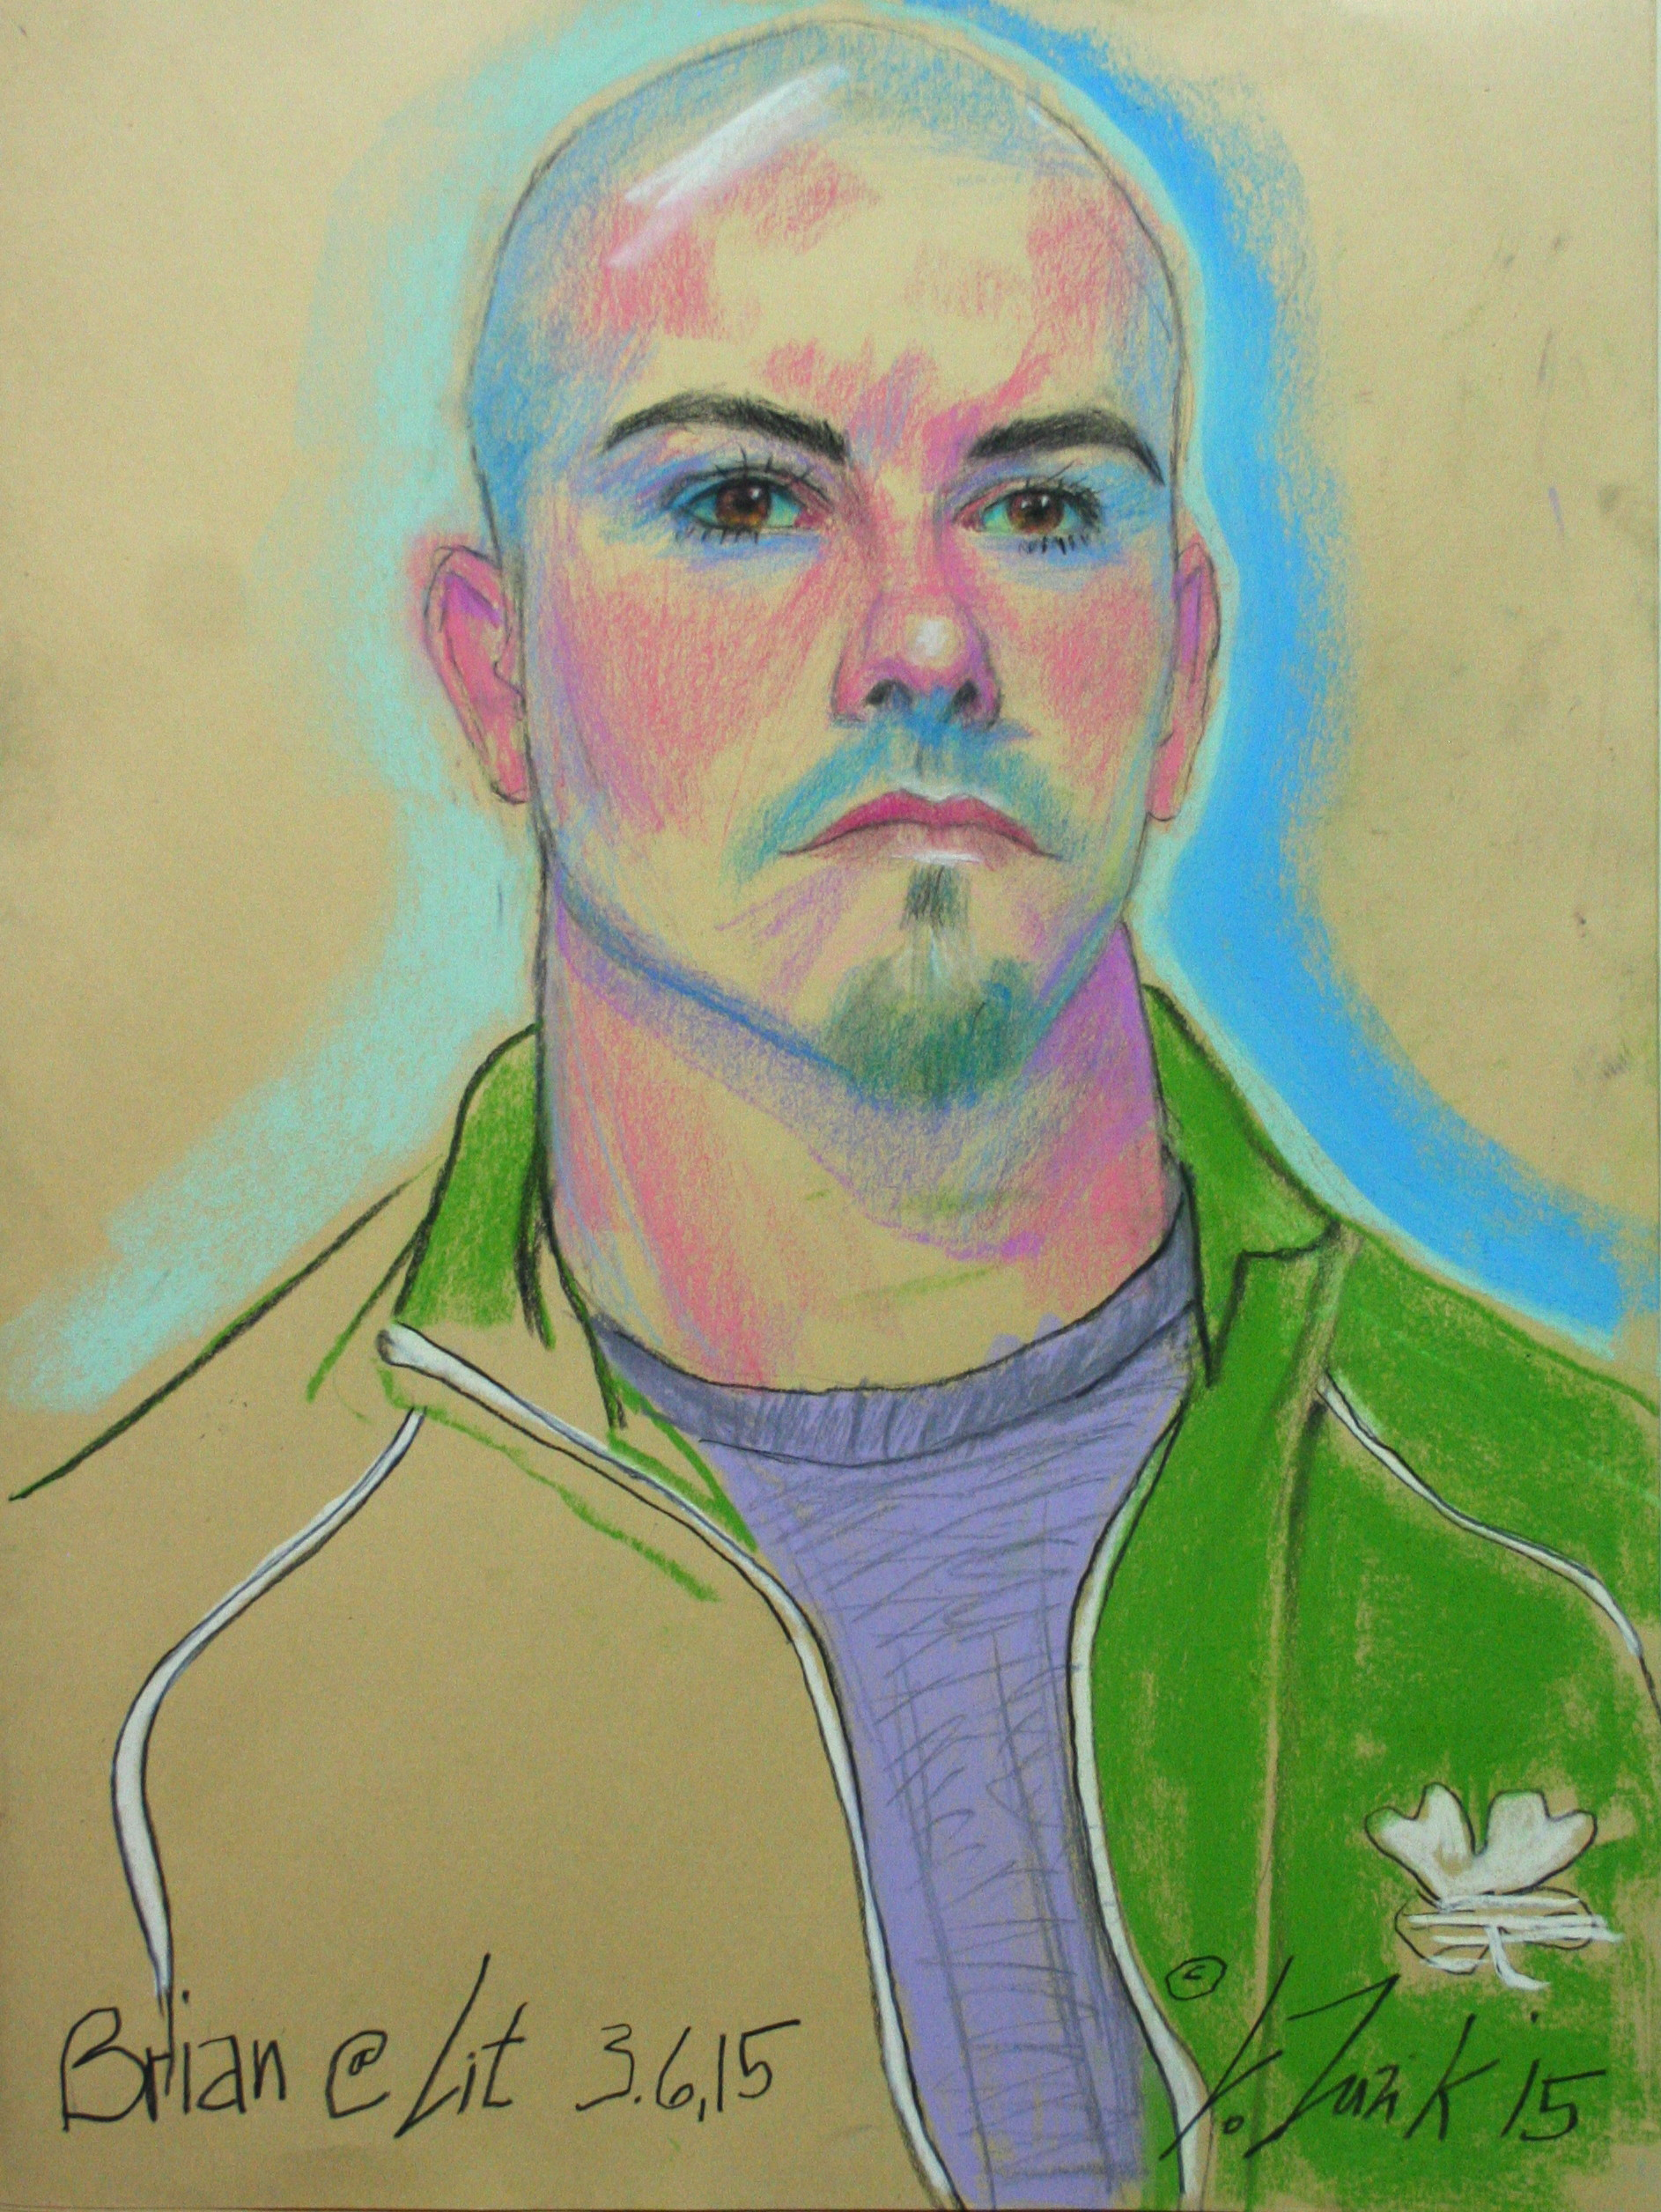 Larry Zuzik did this 2-hour pastel drawing.